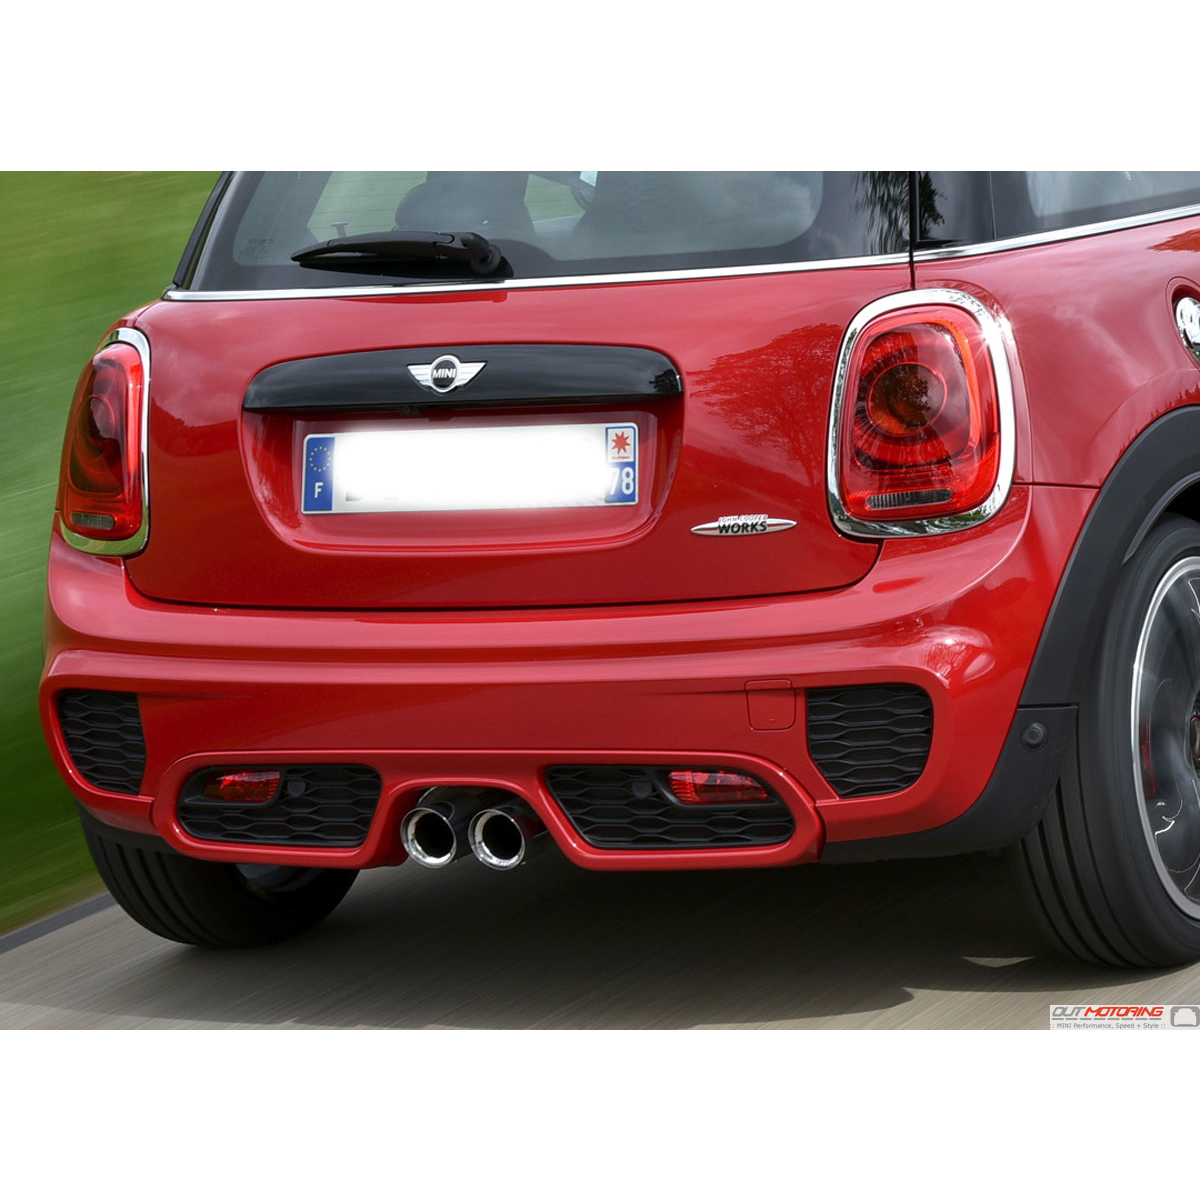 Mini cooper s f56 f55 f57 jcw rear bumper mini cooper accessories mini cooper parts Mini cooper exterior accessories